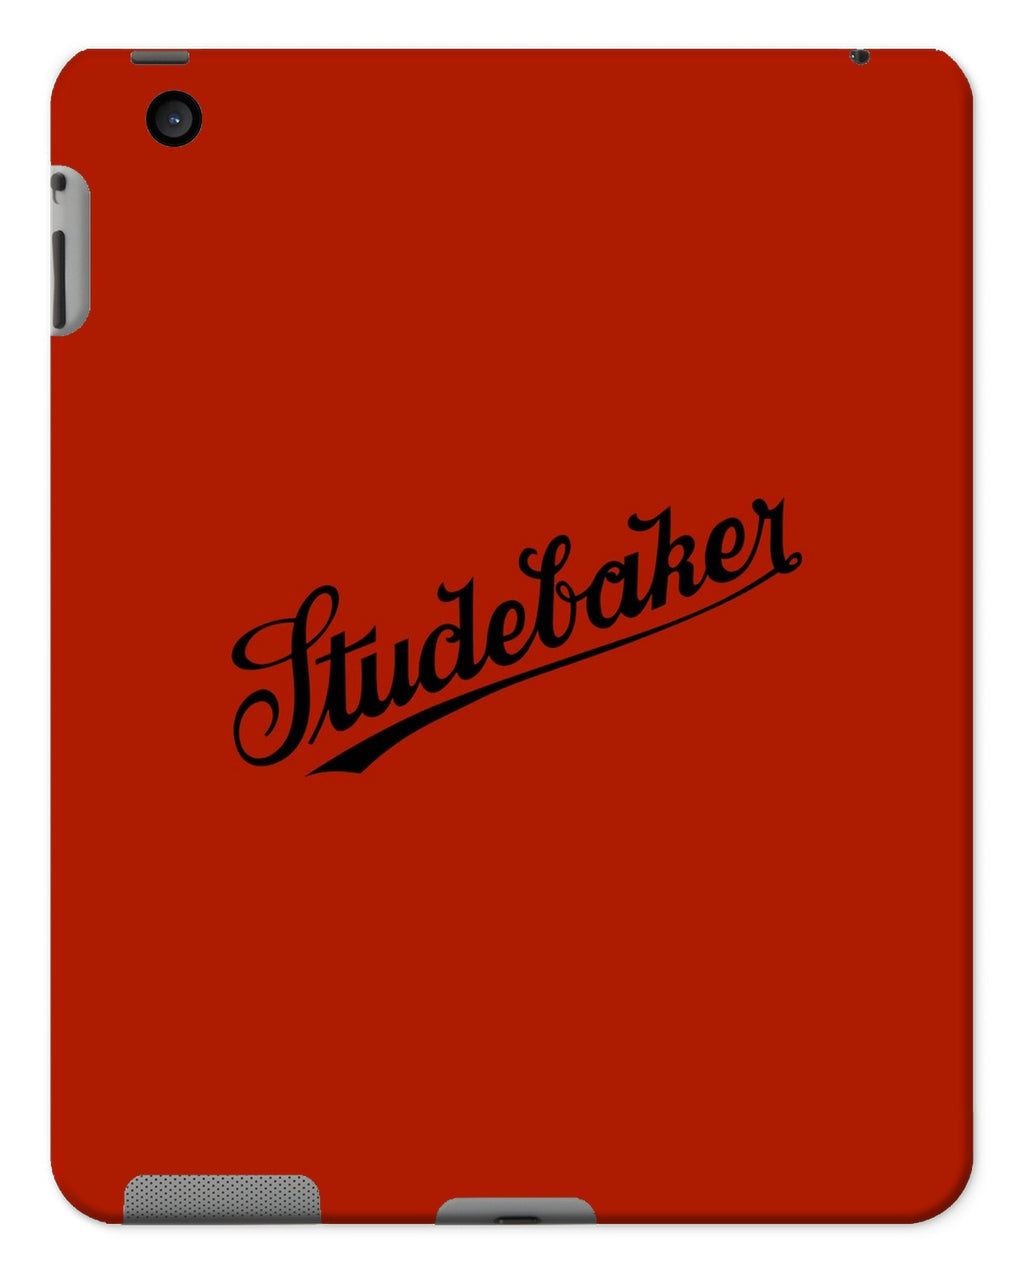 Studebaker® Vintage Tablet Cases